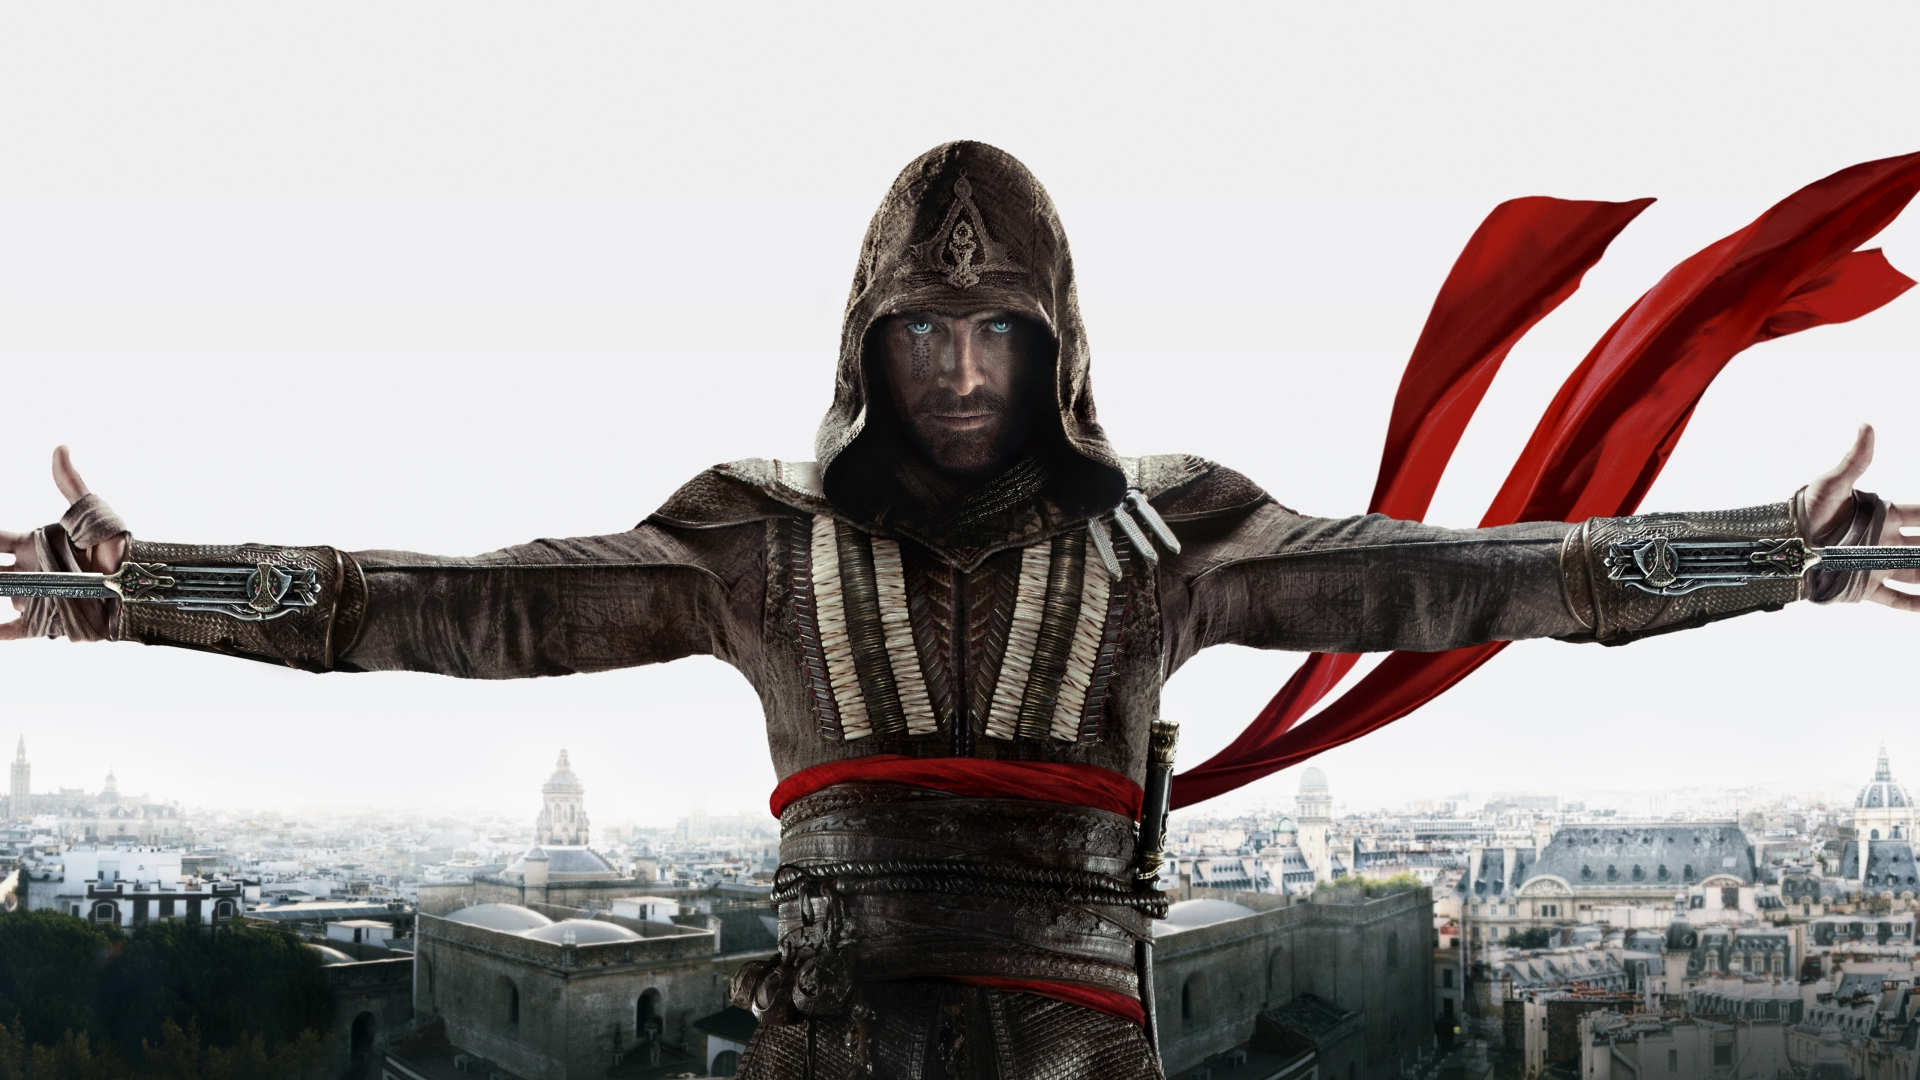 Assassin's Creed (2016) images Assassin Creed Wallpaper HD ...